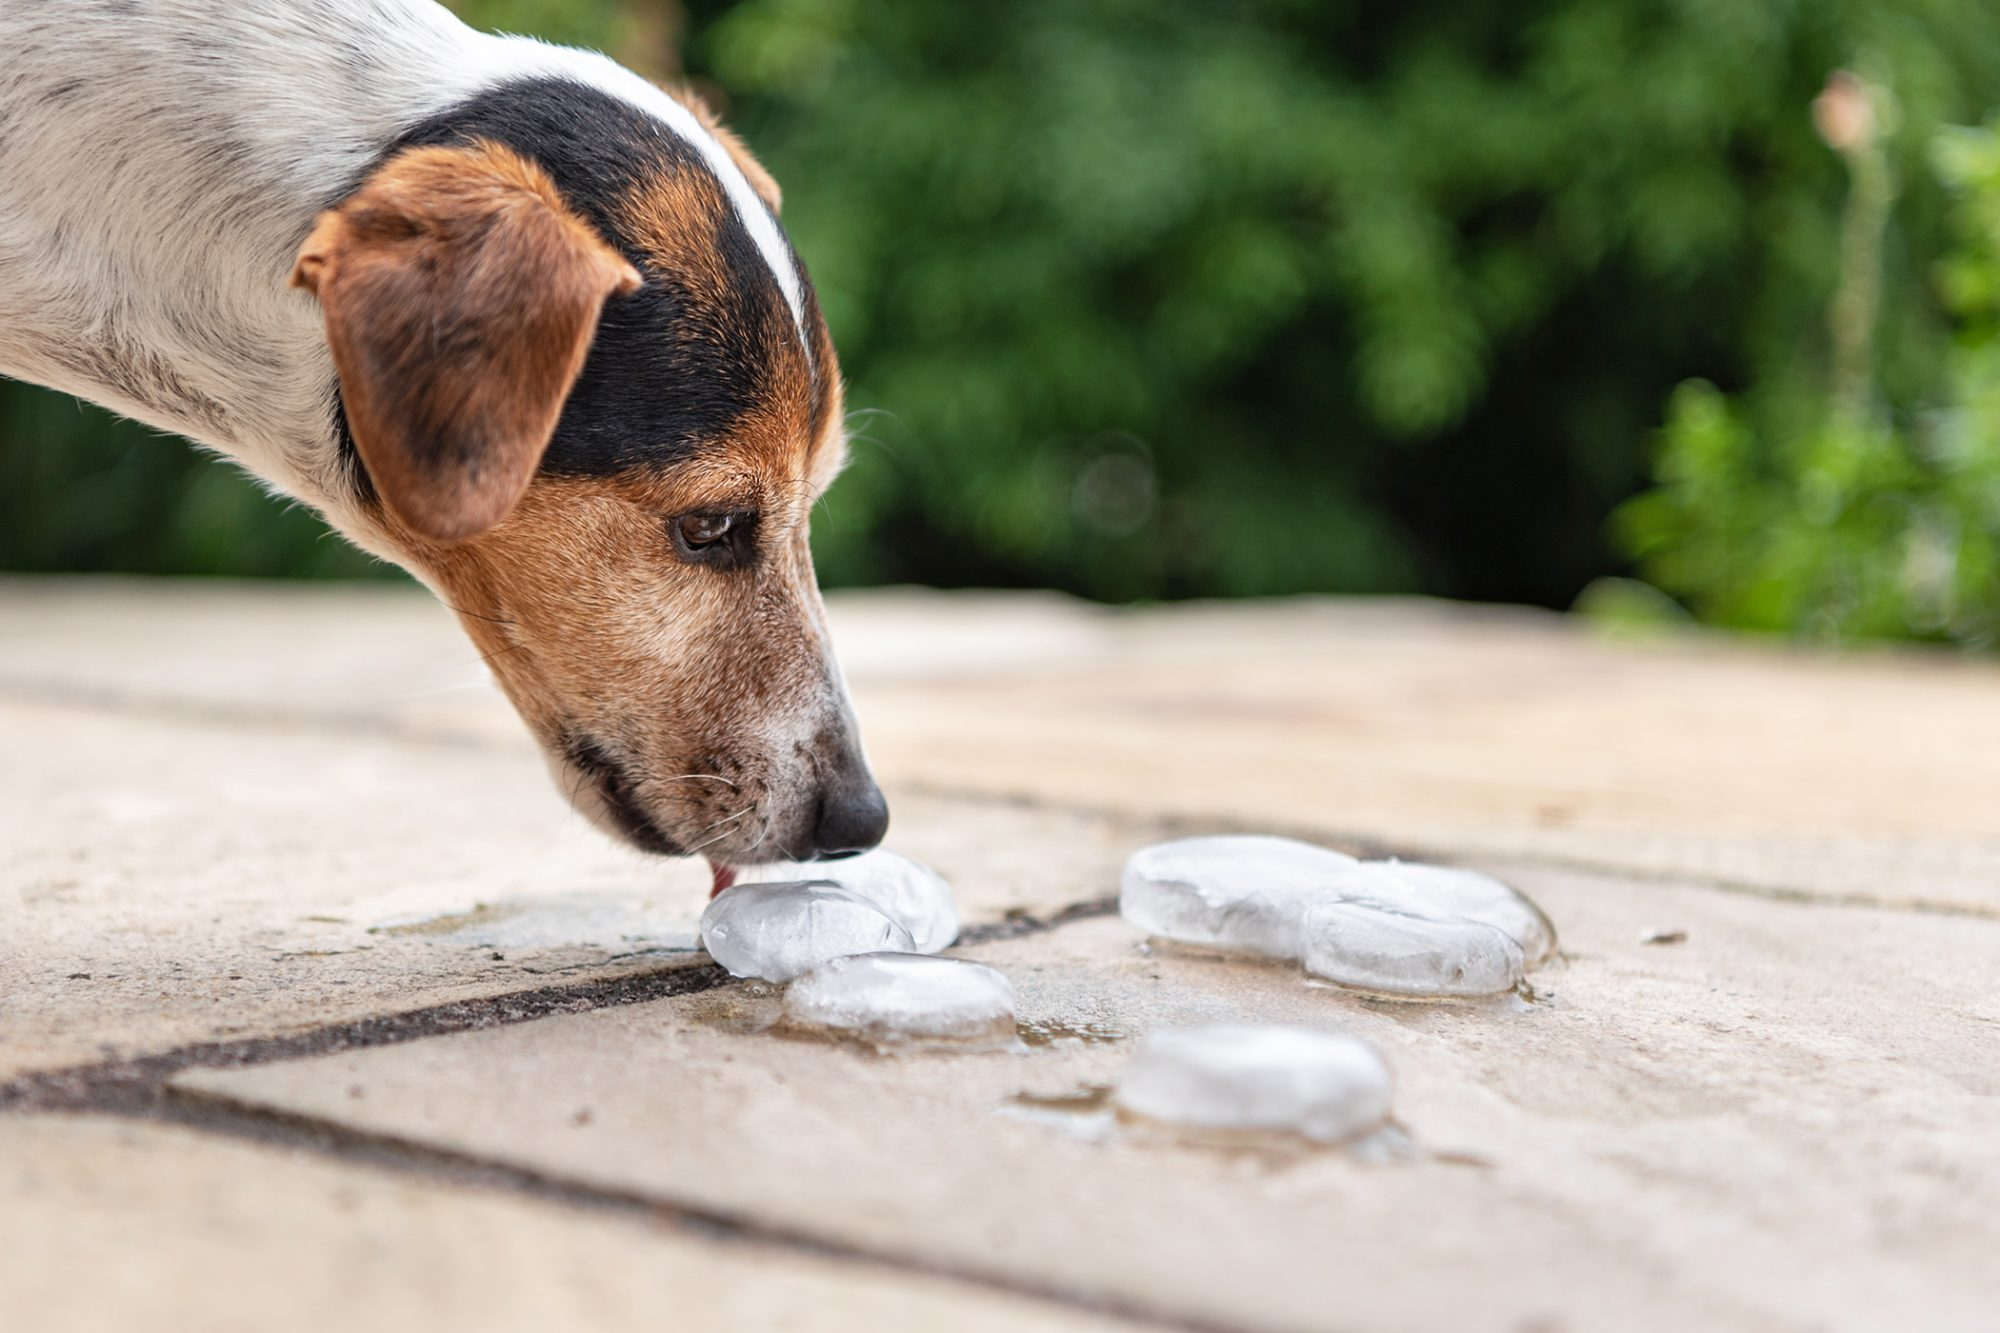 Adult jack russell terrier licks ice cube on pavement